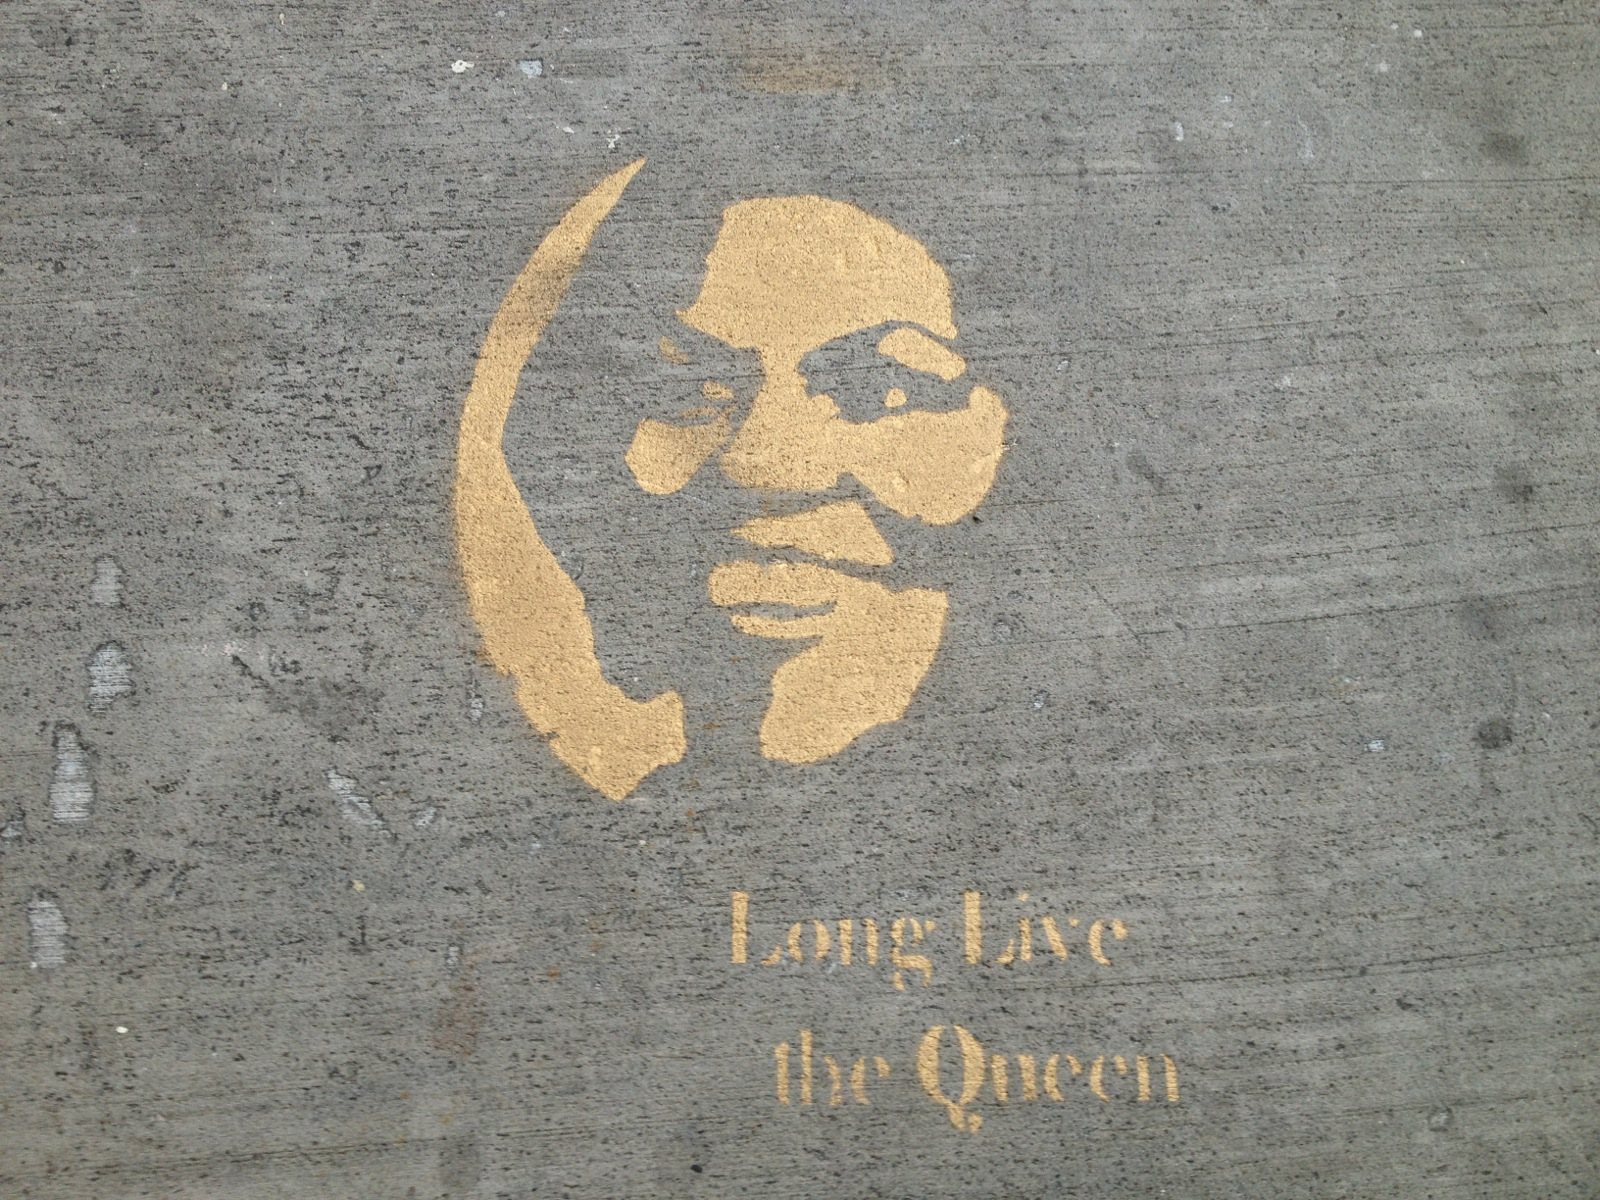 First lady graffiti